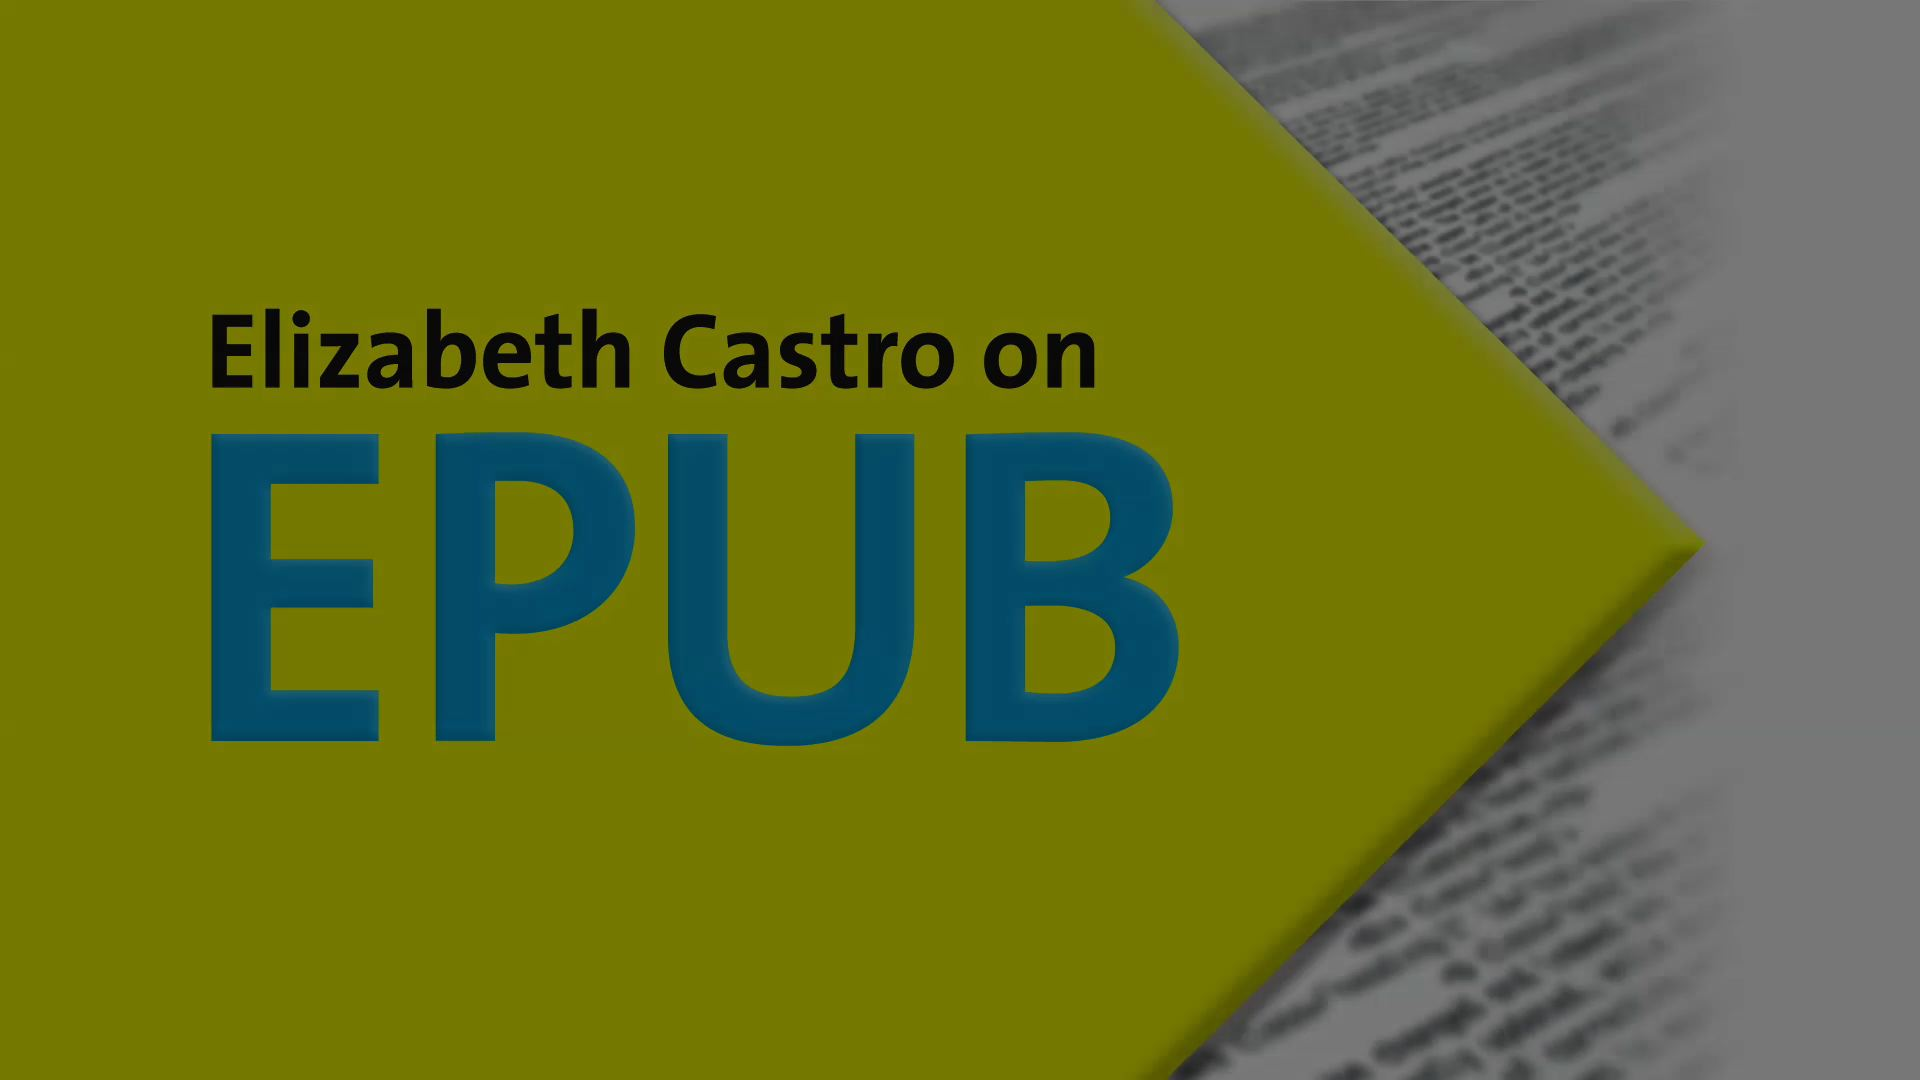 Elizabeth Castro on EPUB